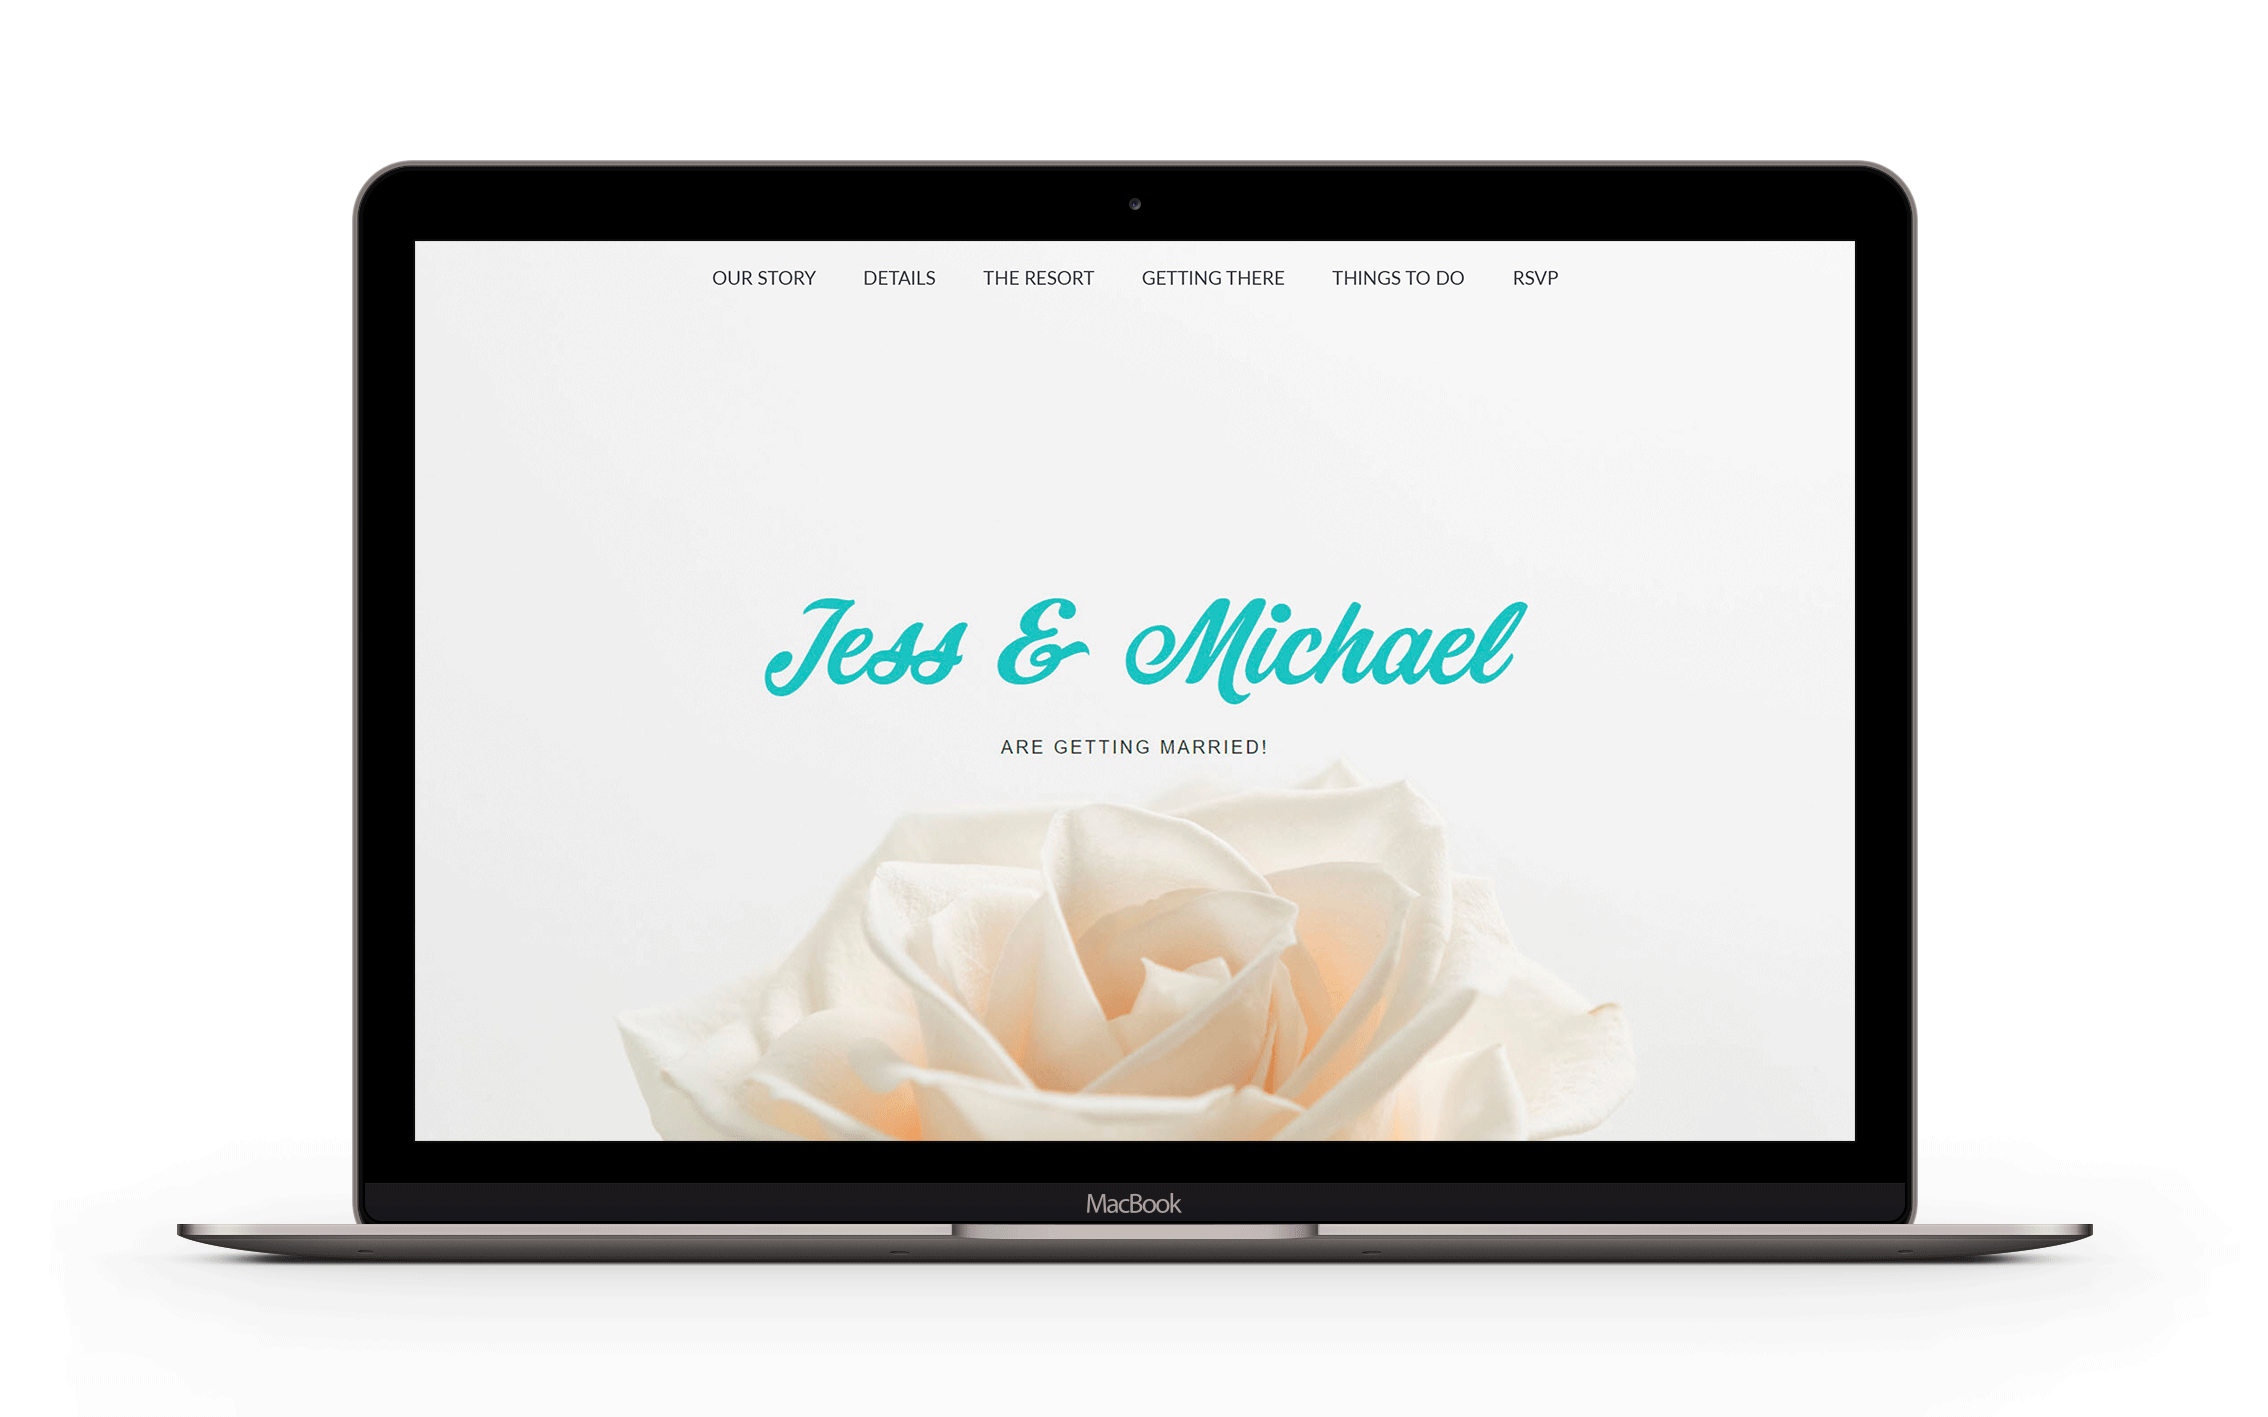 jess-and-michael-are-getting-married-website-design.png